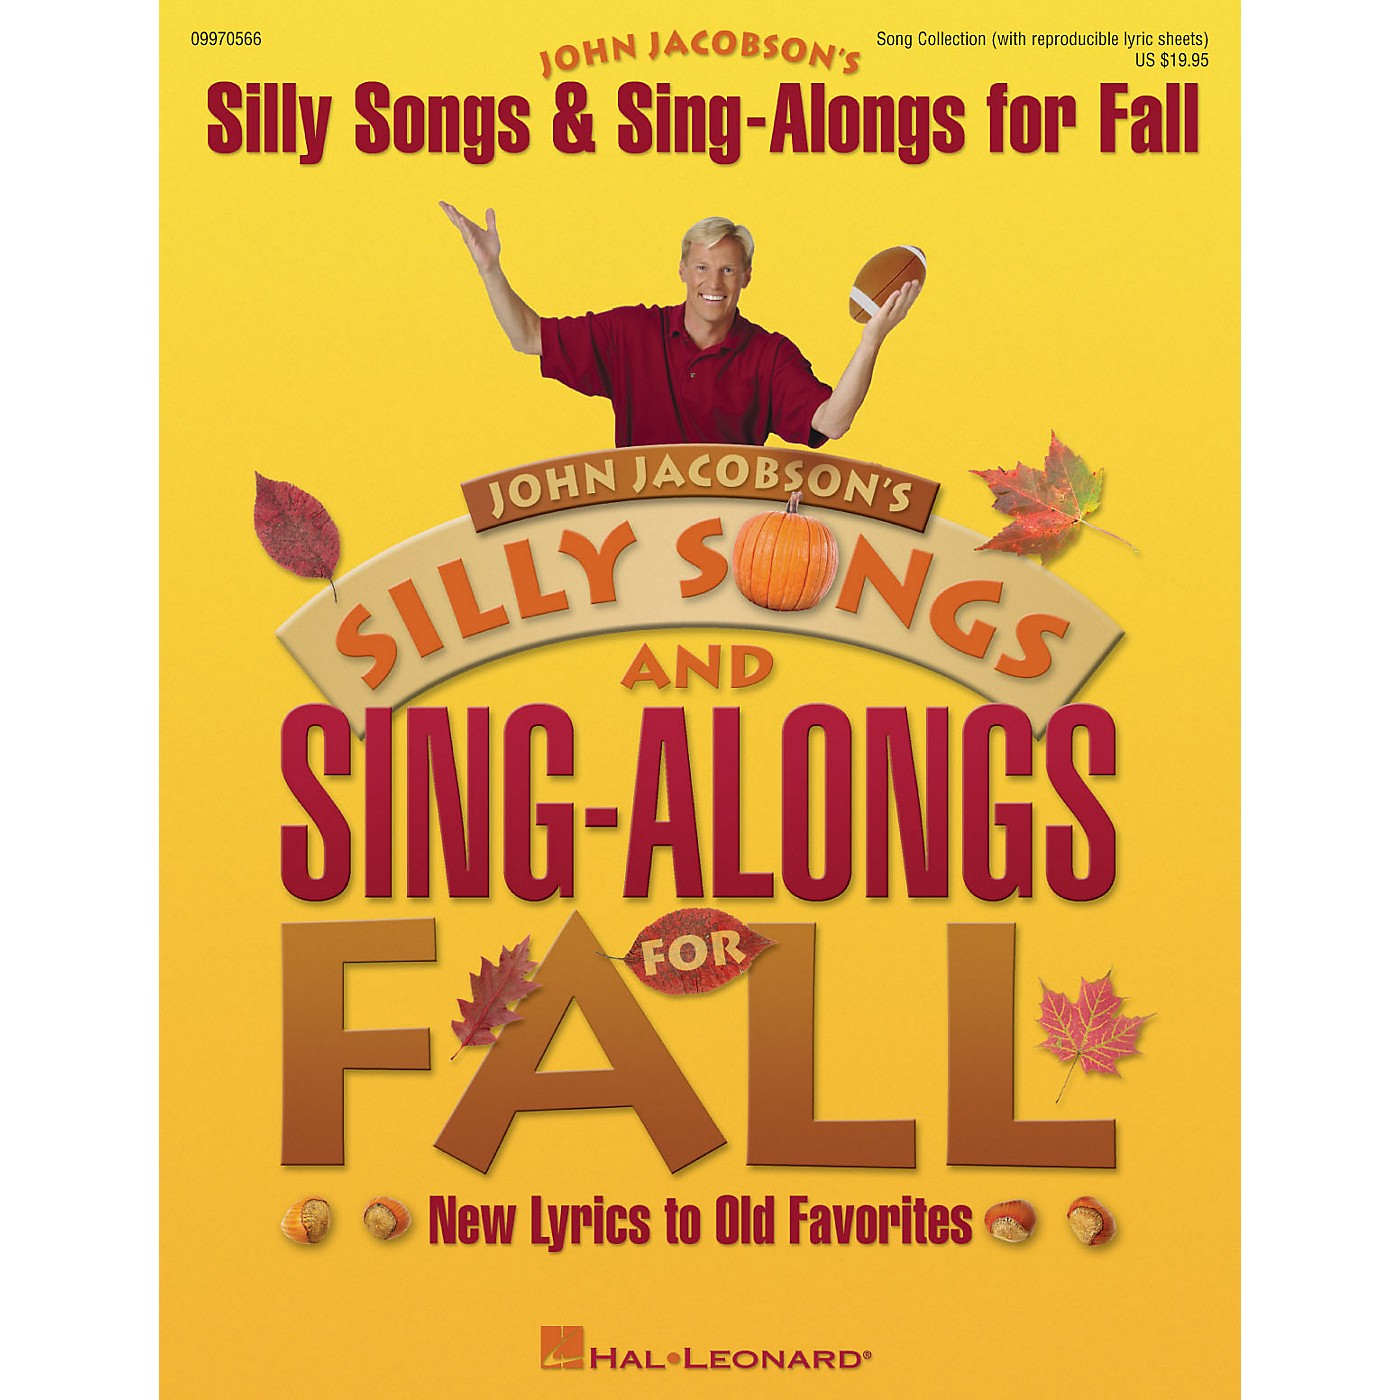 Hal Leonard Silly Songs and Sing-Alongs for Fall (Collection) COLLECTION Composed by John Jacobson thumbnail